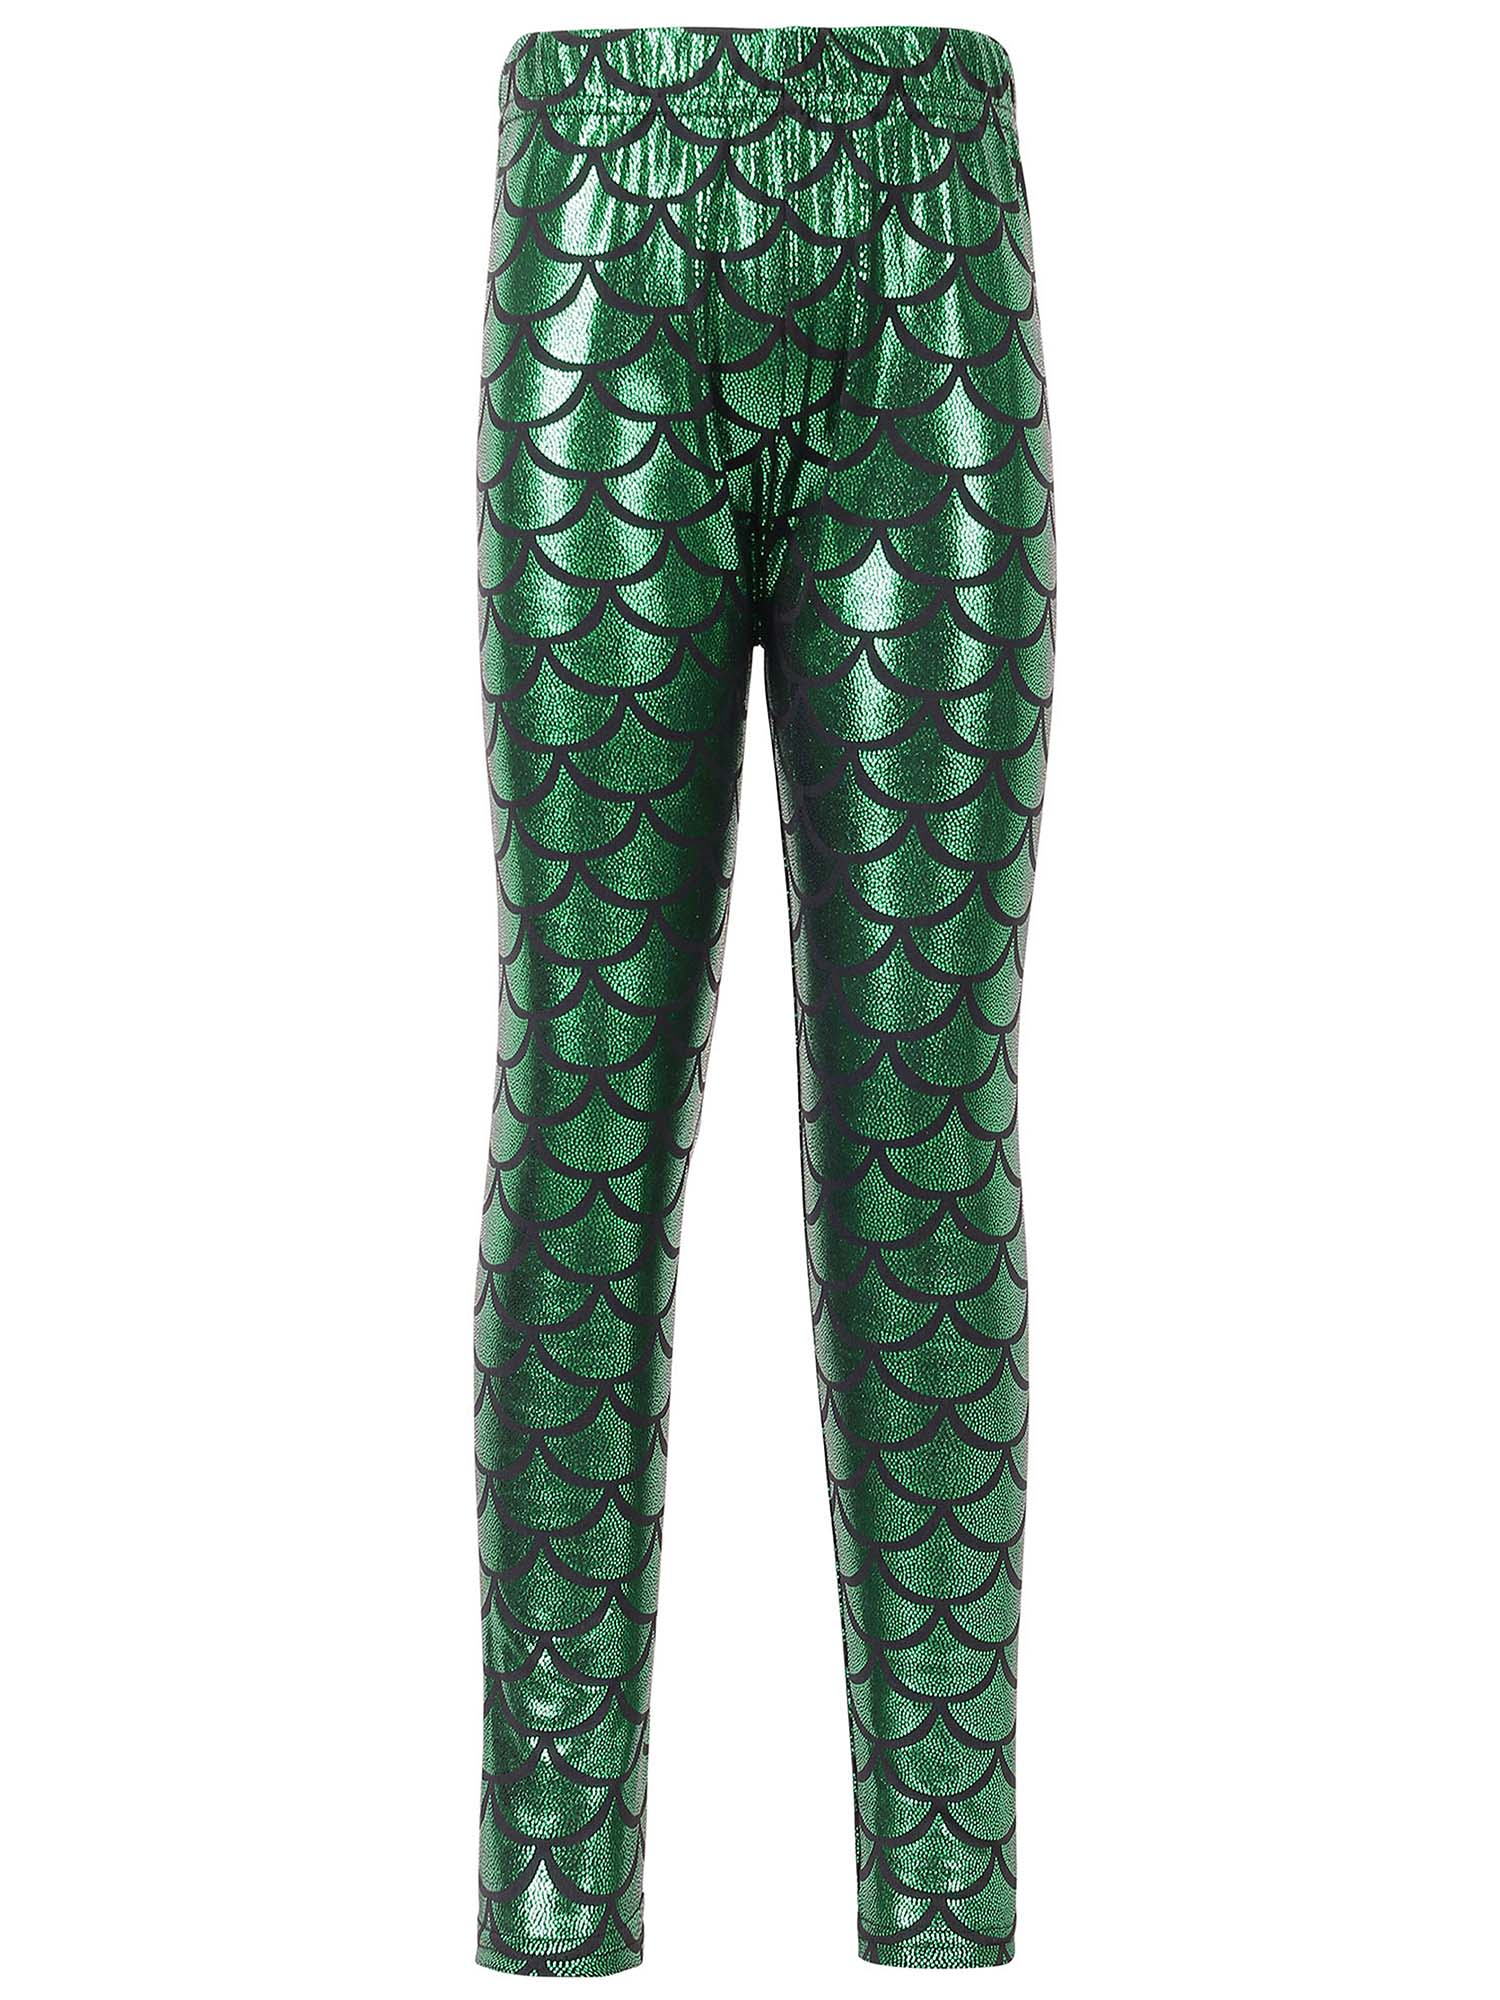 Kids Girls Night Club Full Length Mermaid Fish Scale Print Leggings Green S